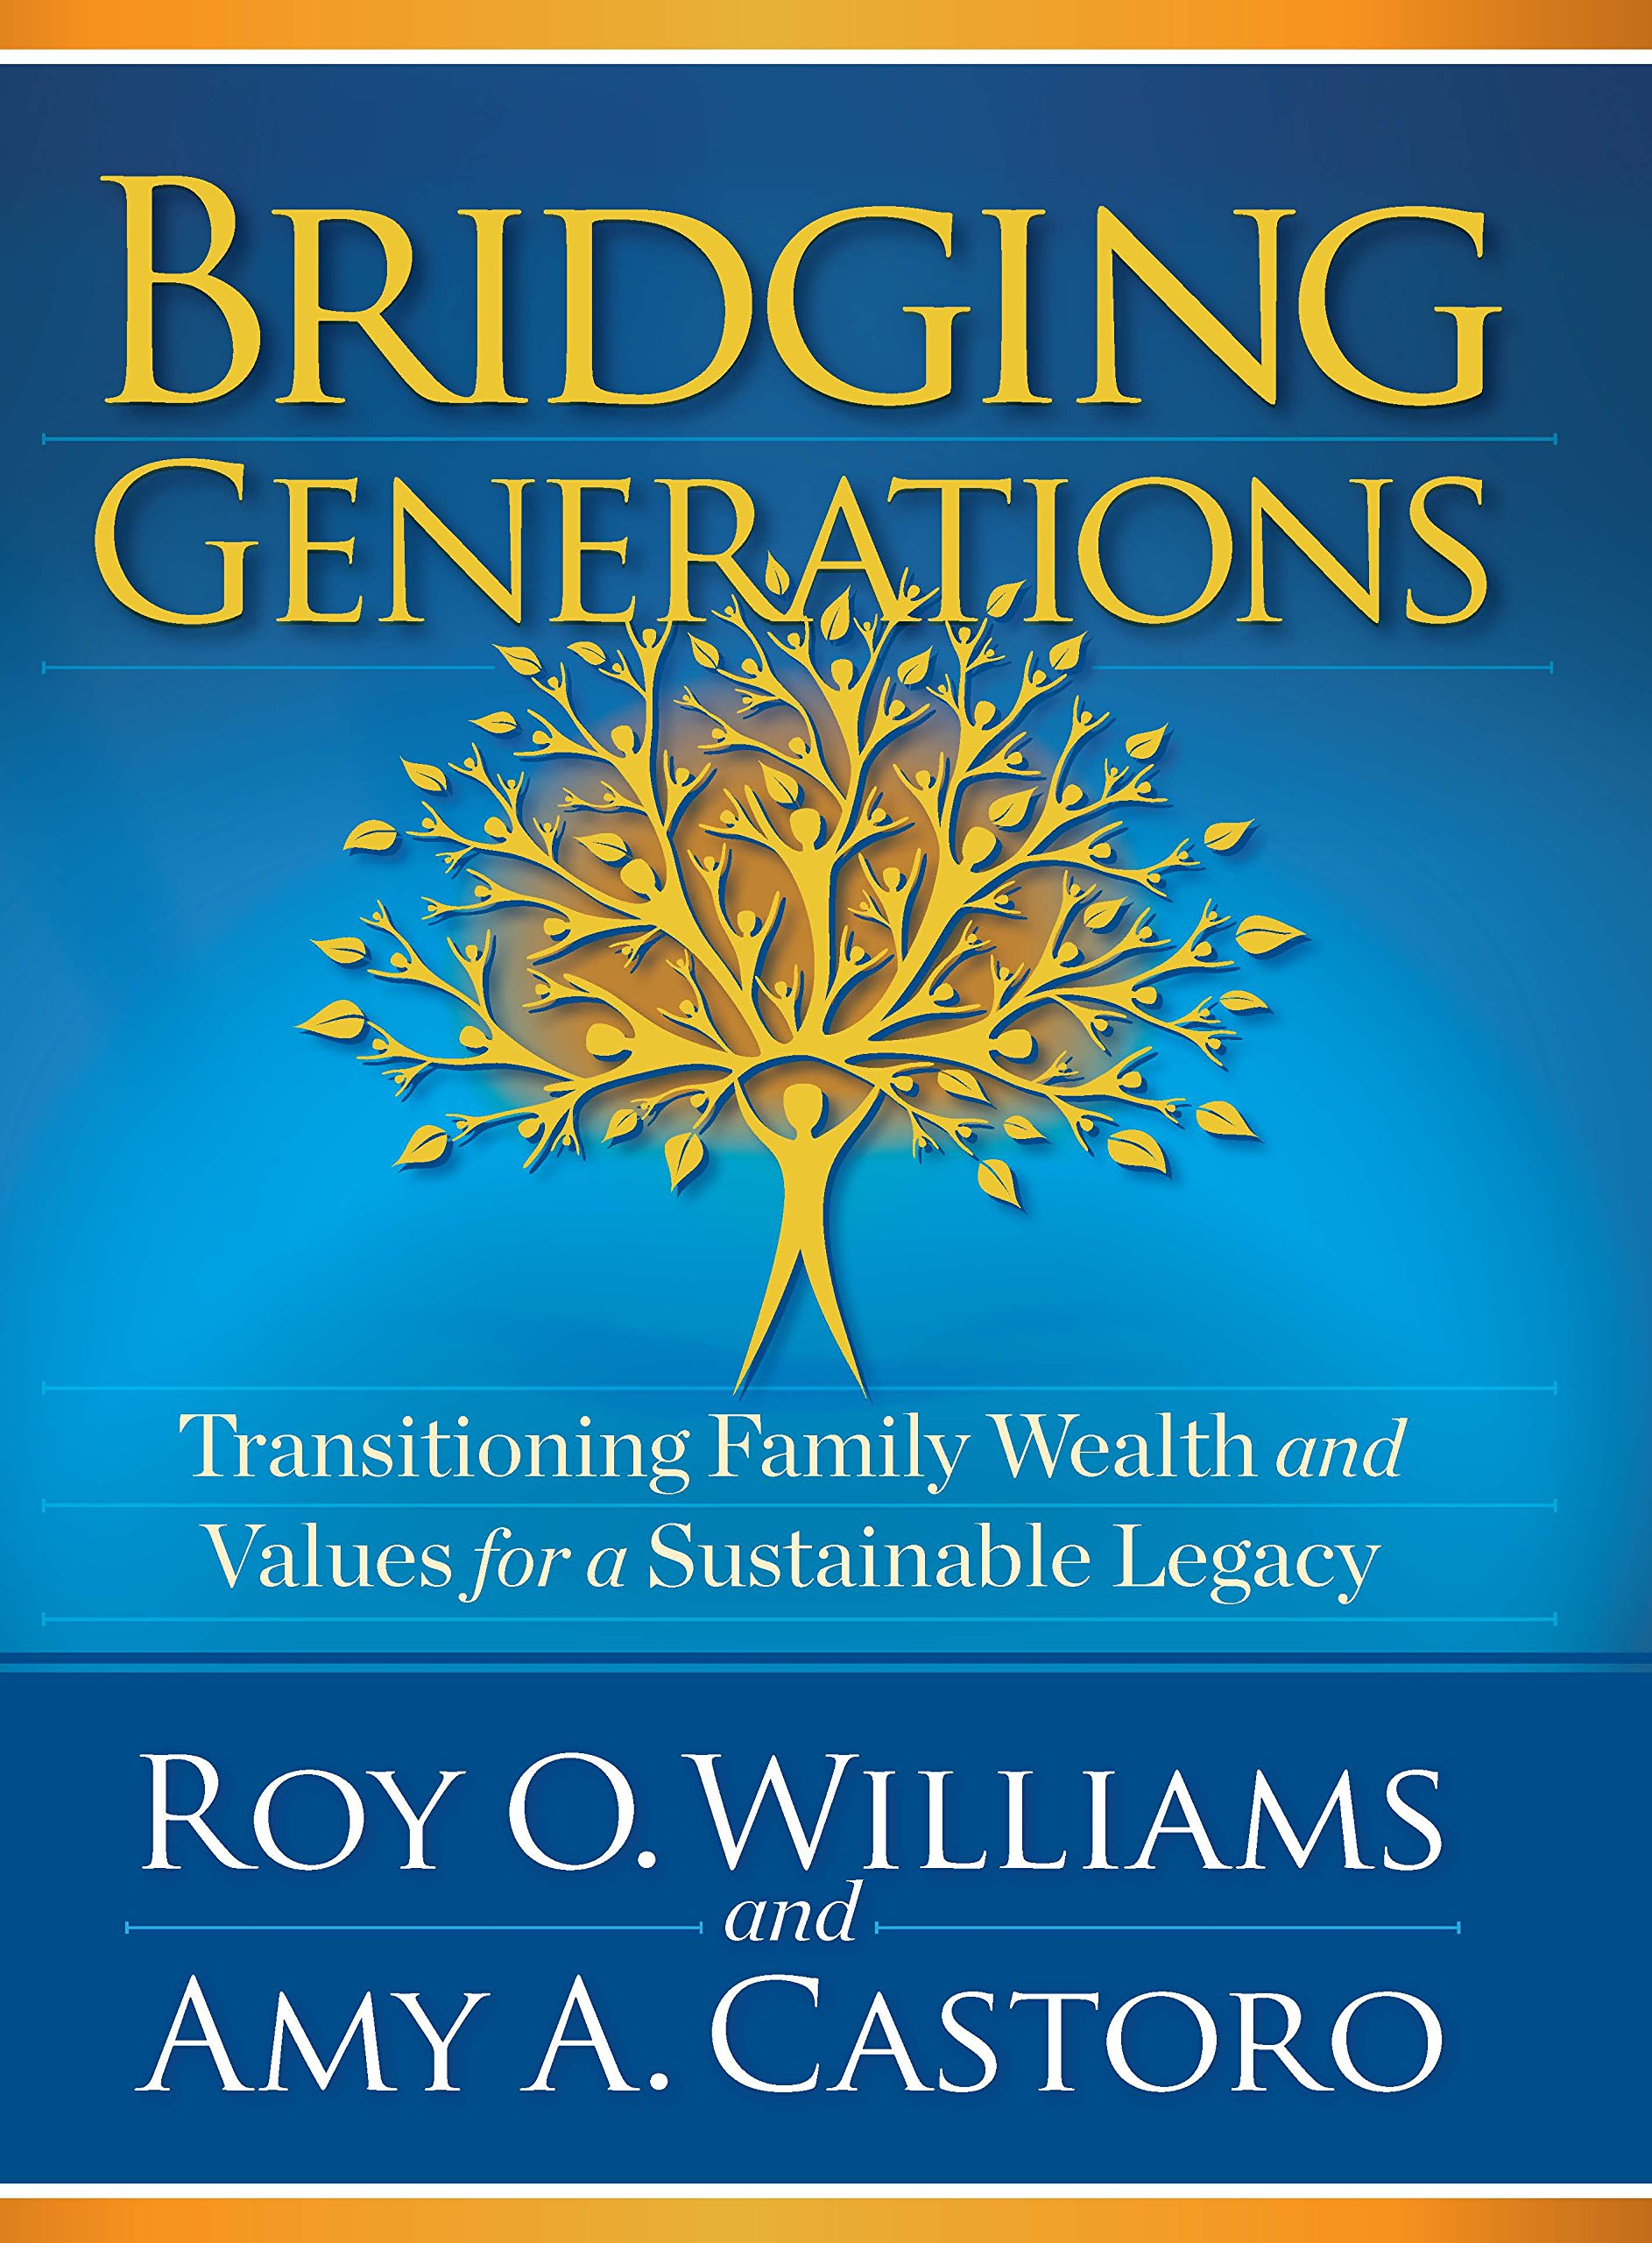 Bridging Generations: Transitioning Family Wealth and Values for a Sustainable Legacy